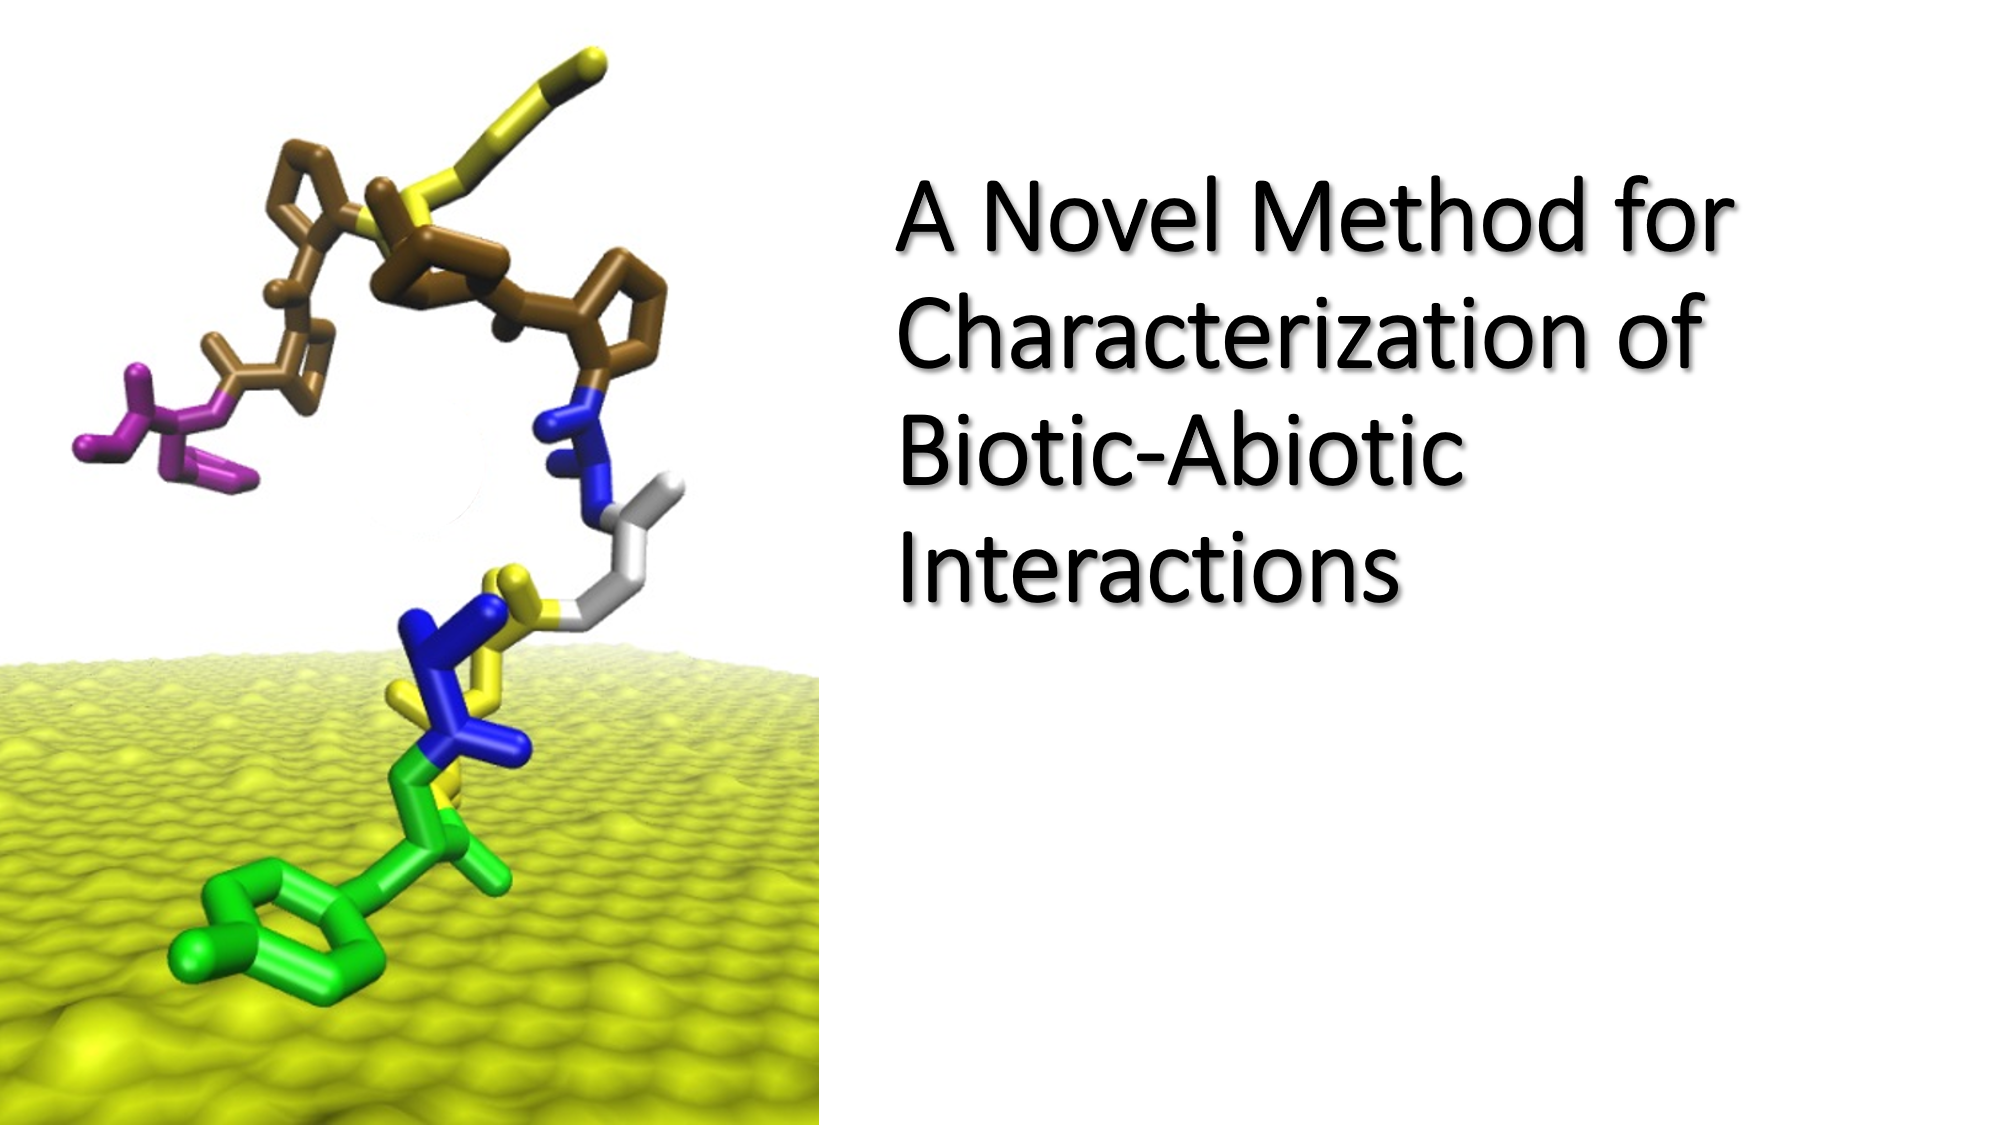 A Novel Method for Characterization of Biotic-Abiotic Interactions